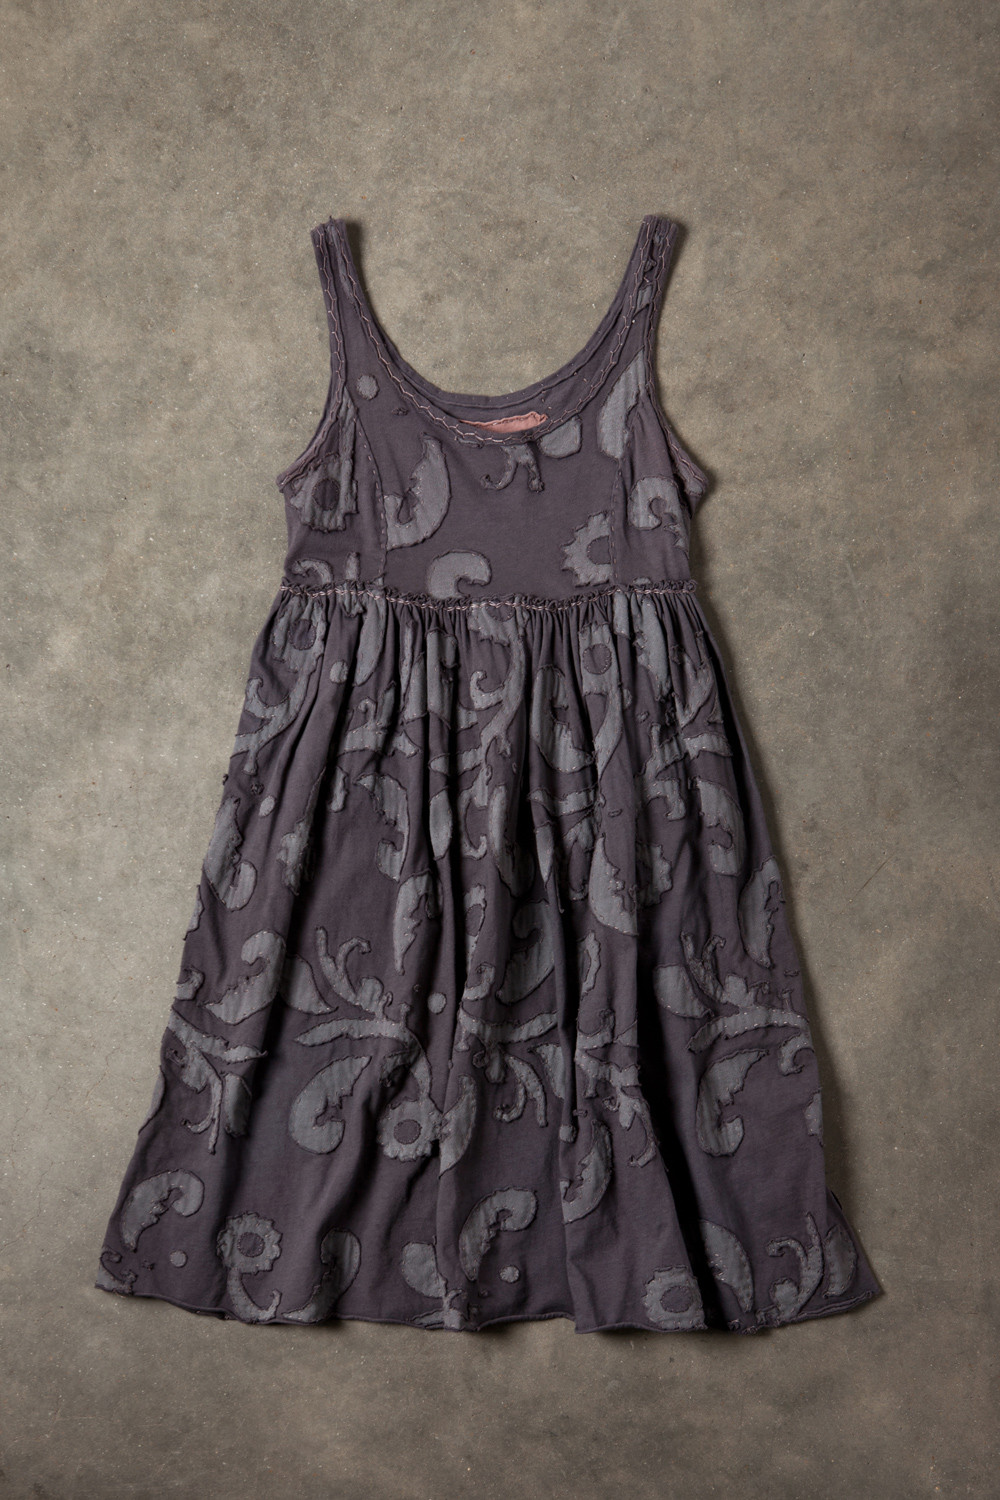 Best ideas about DIY Baby Dress . Save or Pin DIY BABY DOLL CAMISOLE DRESS AND FLIP FLOPS Alabama Now.